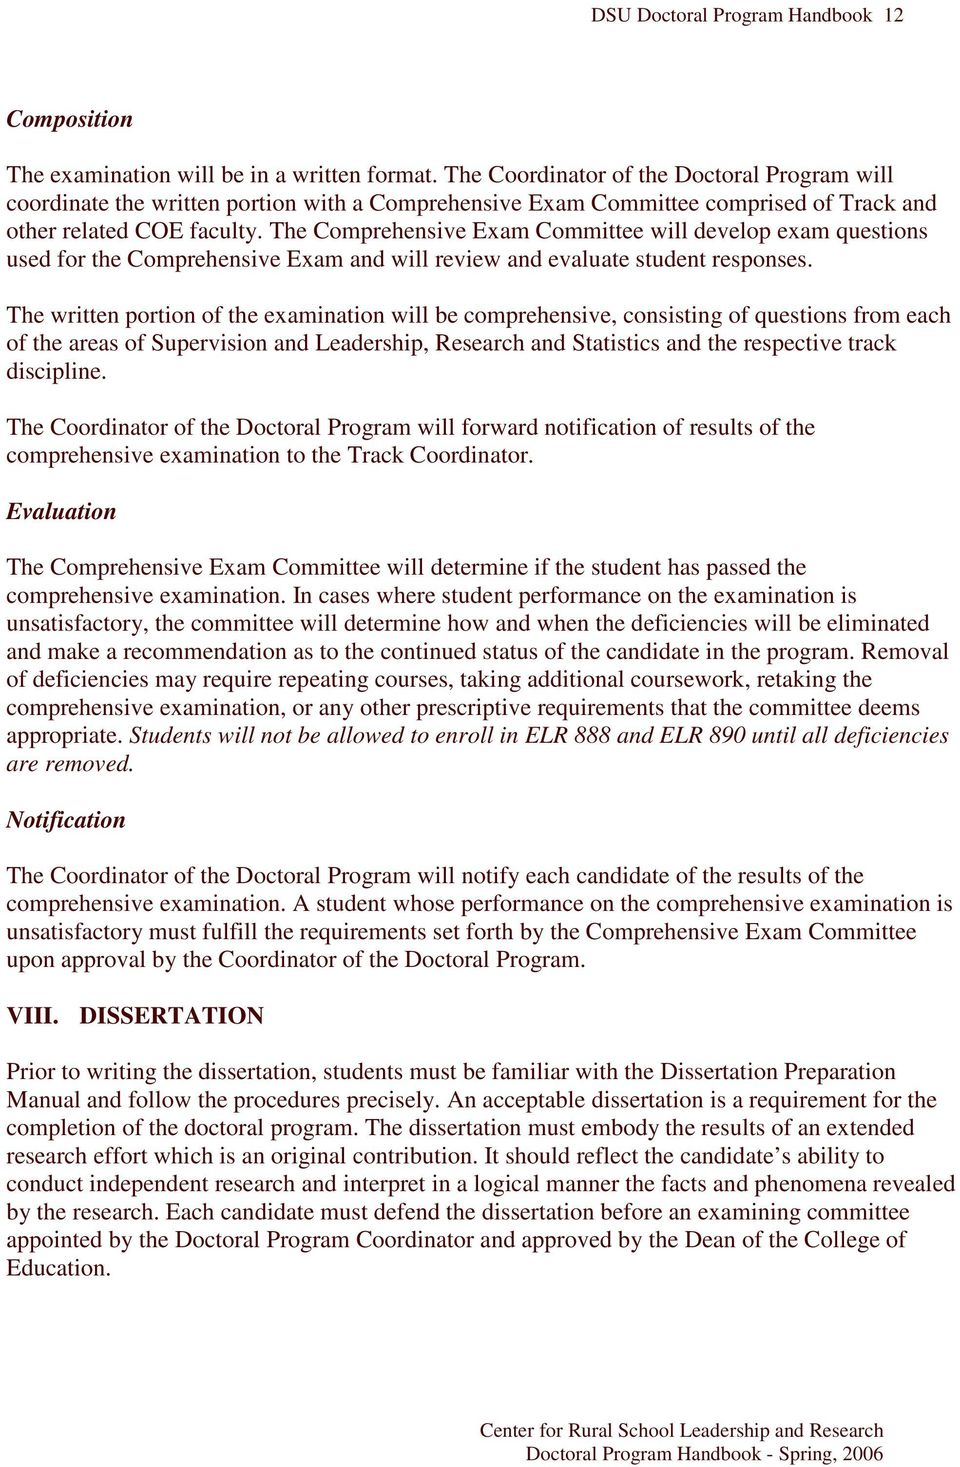 The Comprehensive Exam Committee will develop exam questions used for the Comprehensive Exam and will review and evaluate student responses.